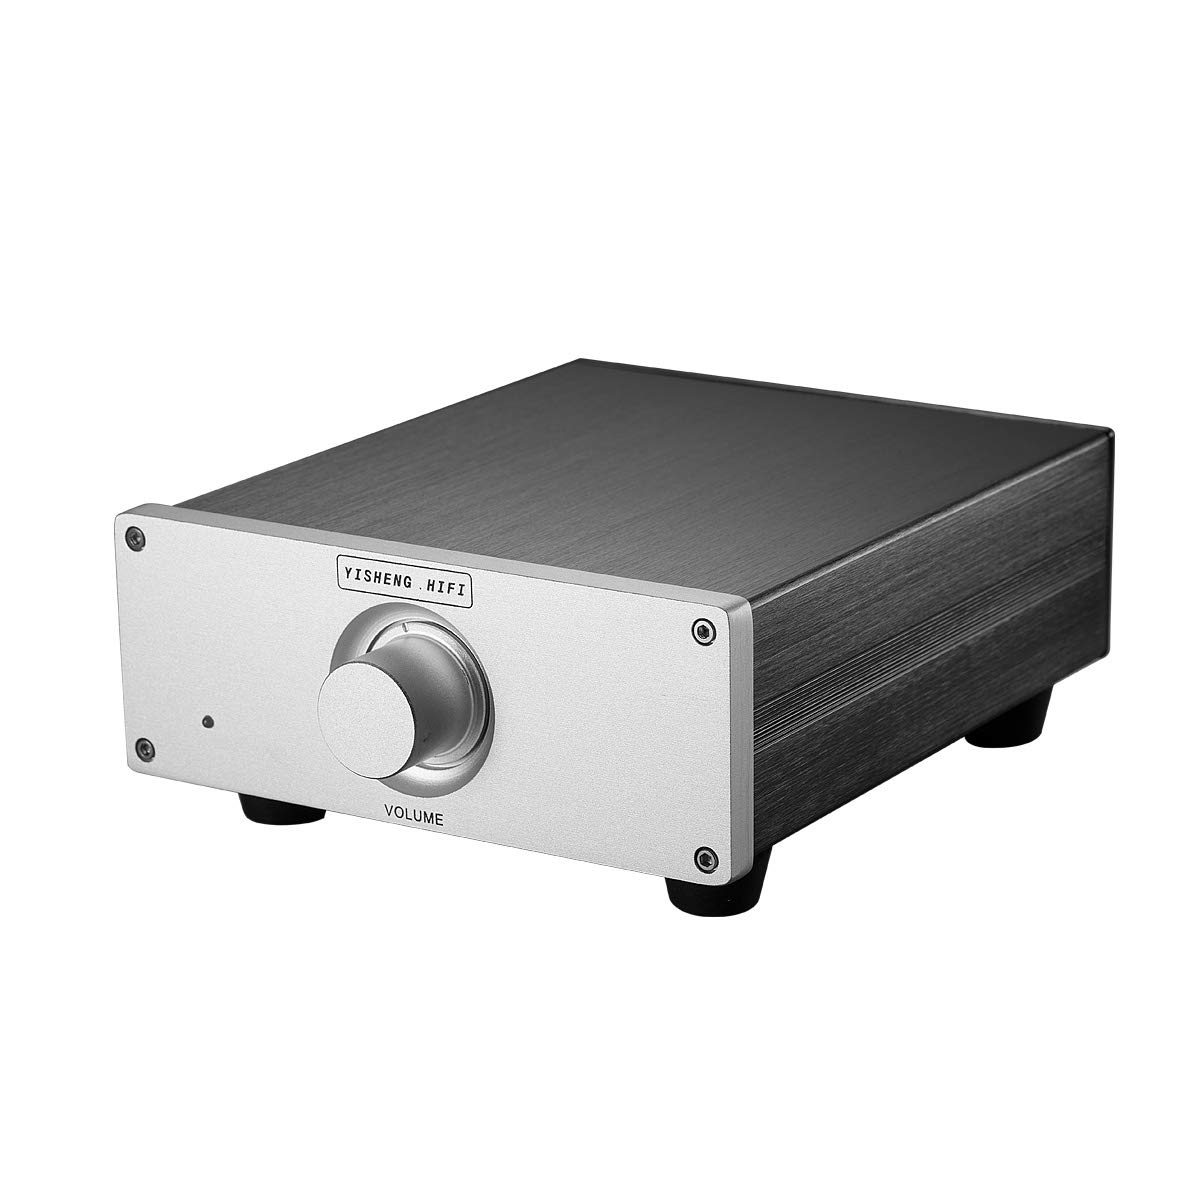 Nobsound XLR High Accuracy Relay Volume Control ; Balanced Passive Preamplifier by Douk Audio